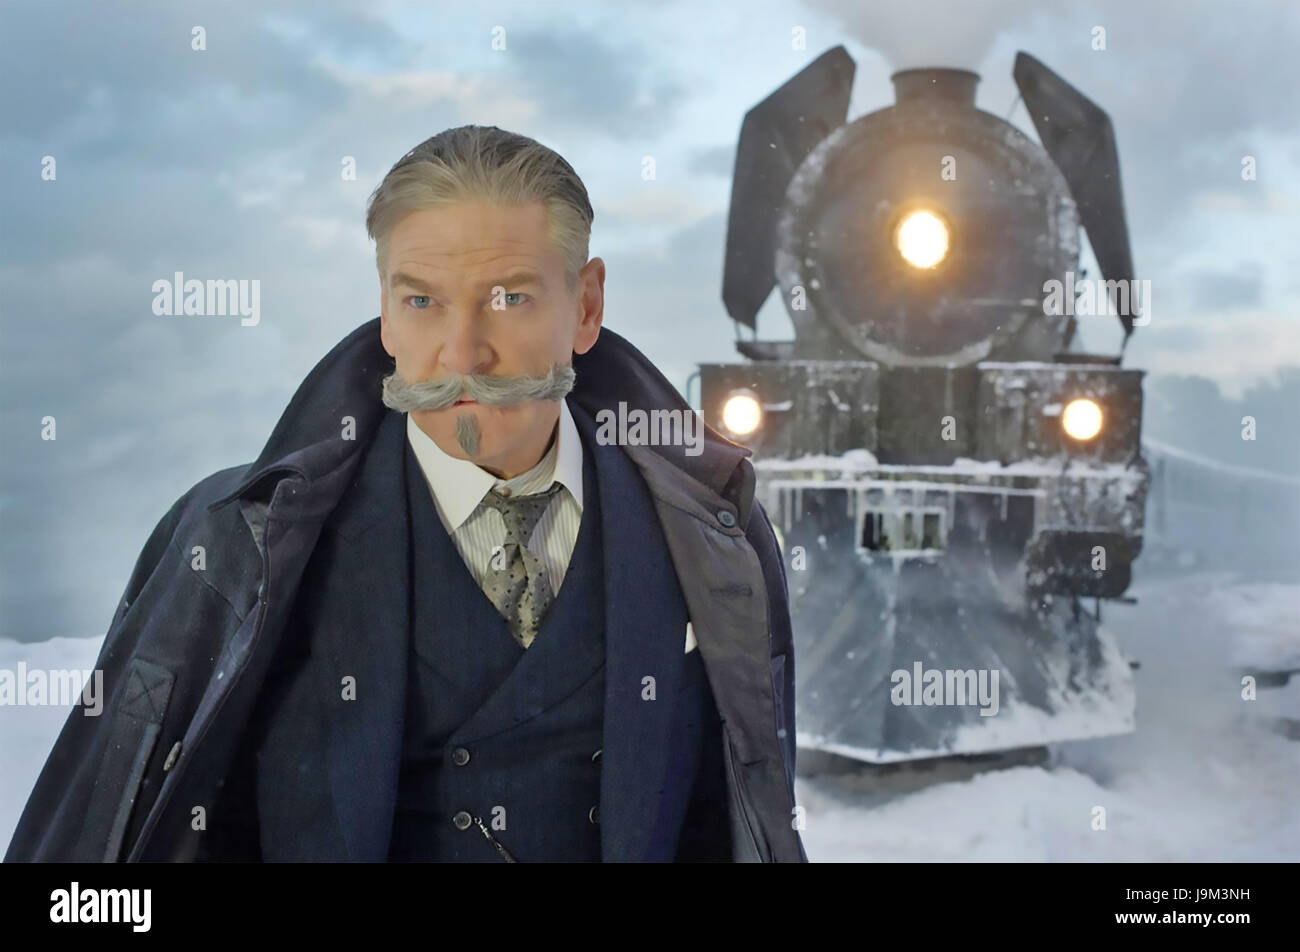 MURDER ON THE ORINET EXPRESS 2017 20th Century Fox film with Kenneth Branagh as Poirot - Stock Image